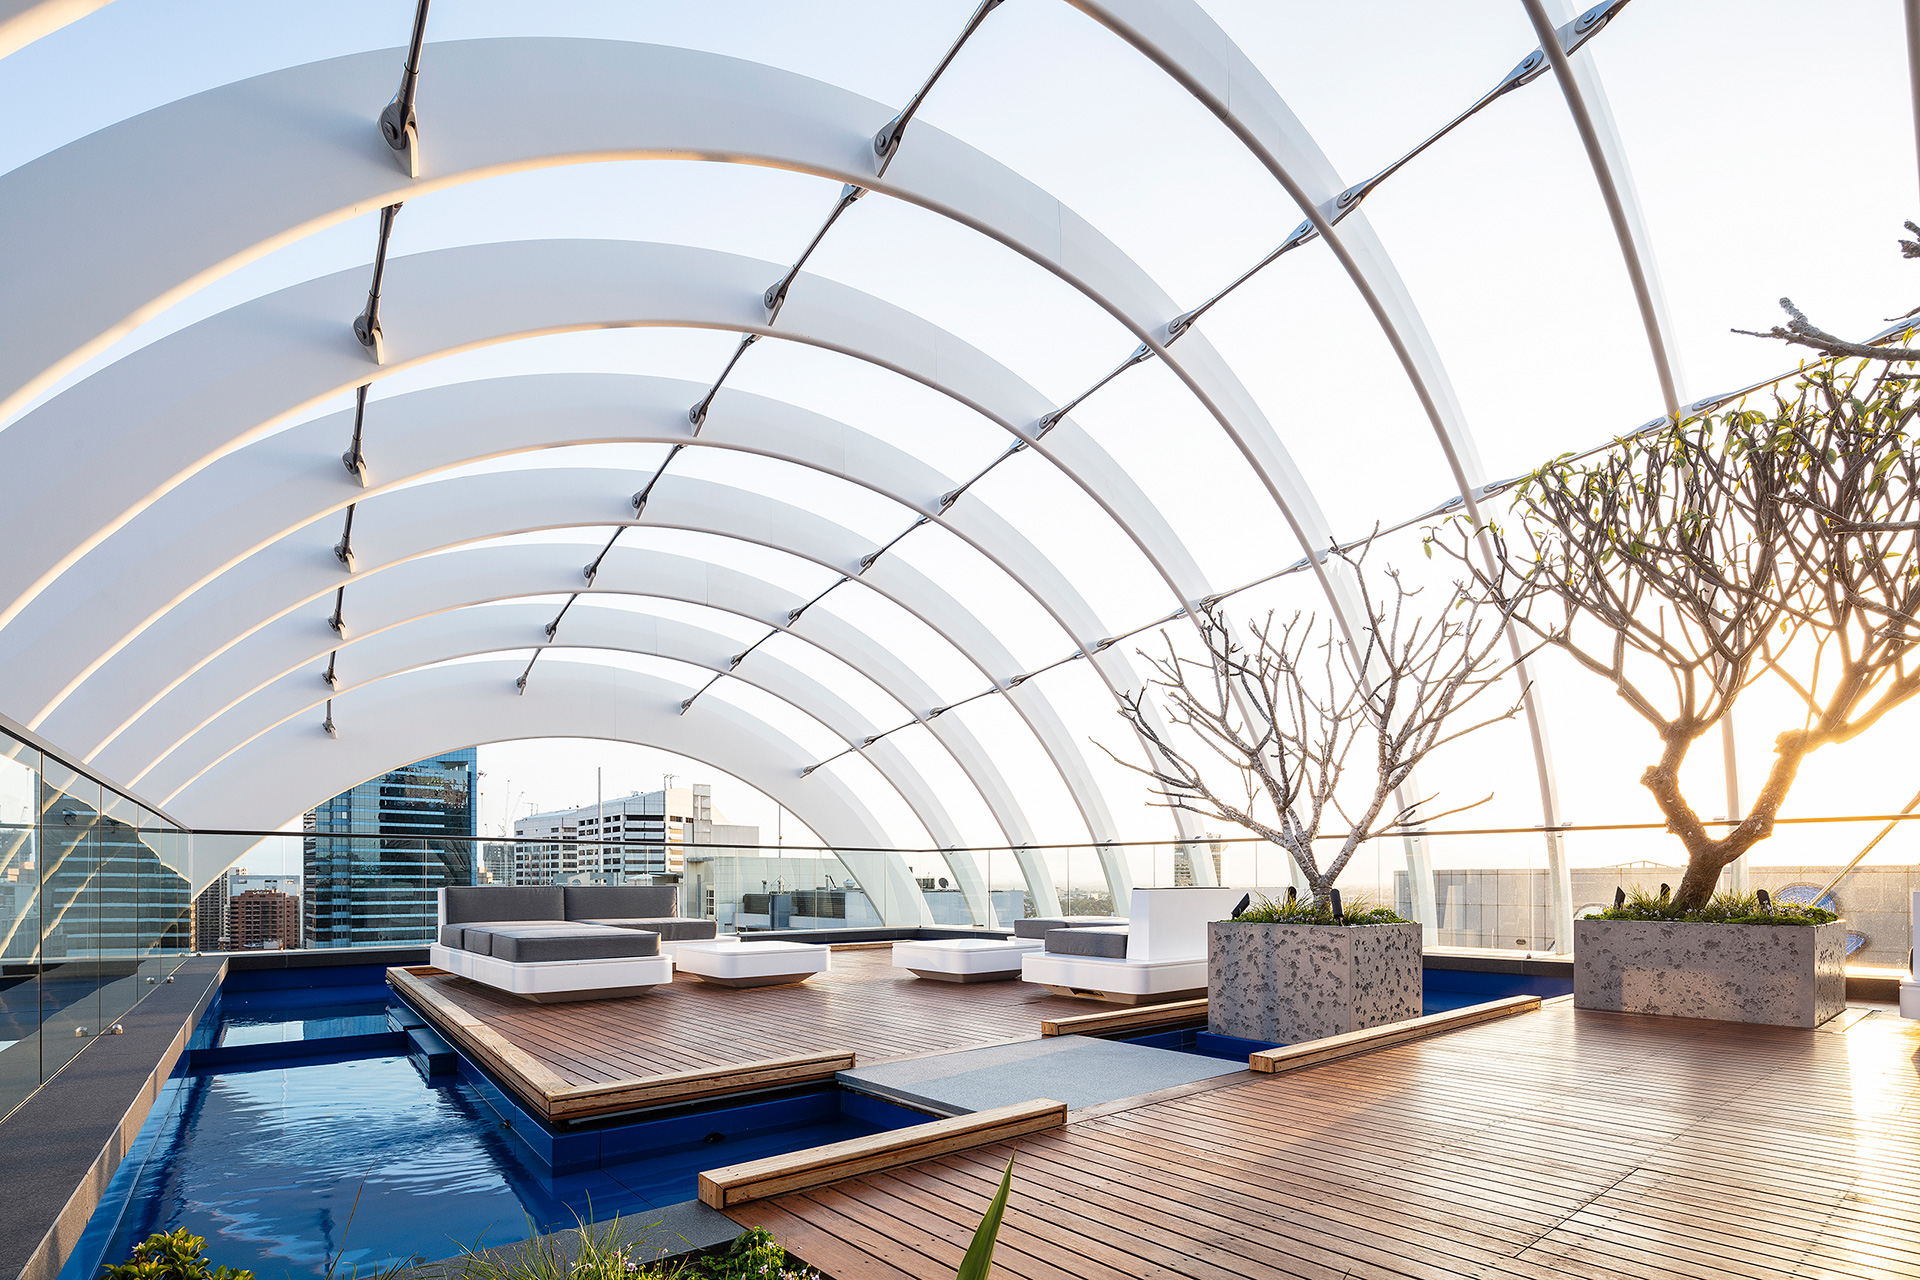 Rooftop garden | Arc |Koichi Takada Architects | Sydney | STIRworld